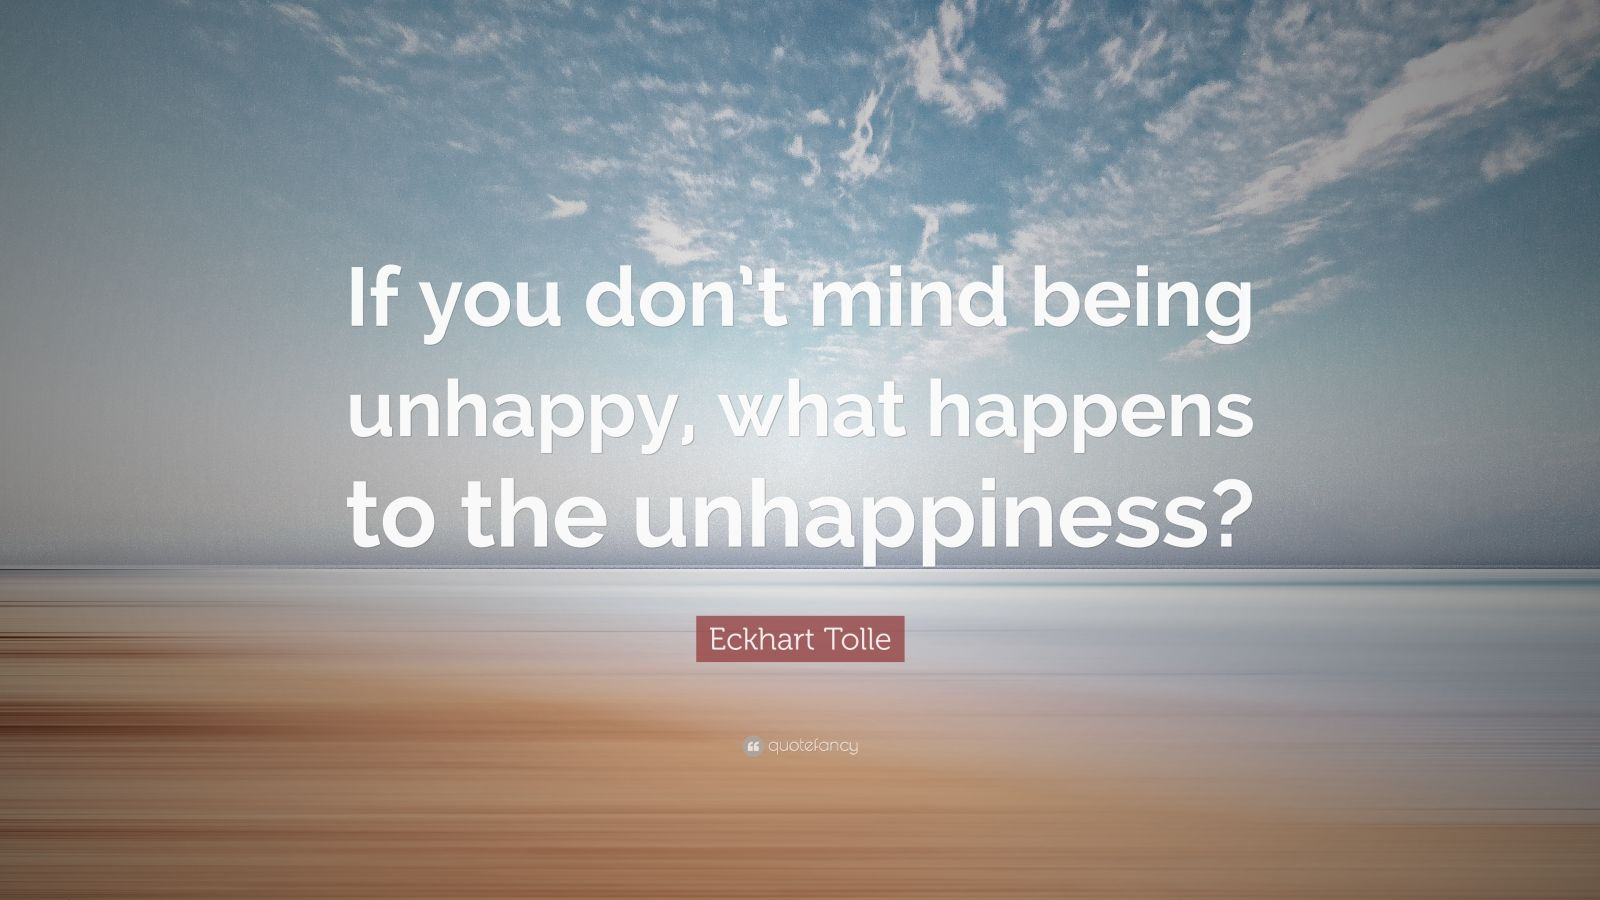 """Eckhart Tolle Quote: """"If you don't mind being unhappy, what happens to the unhappiness?"""""""